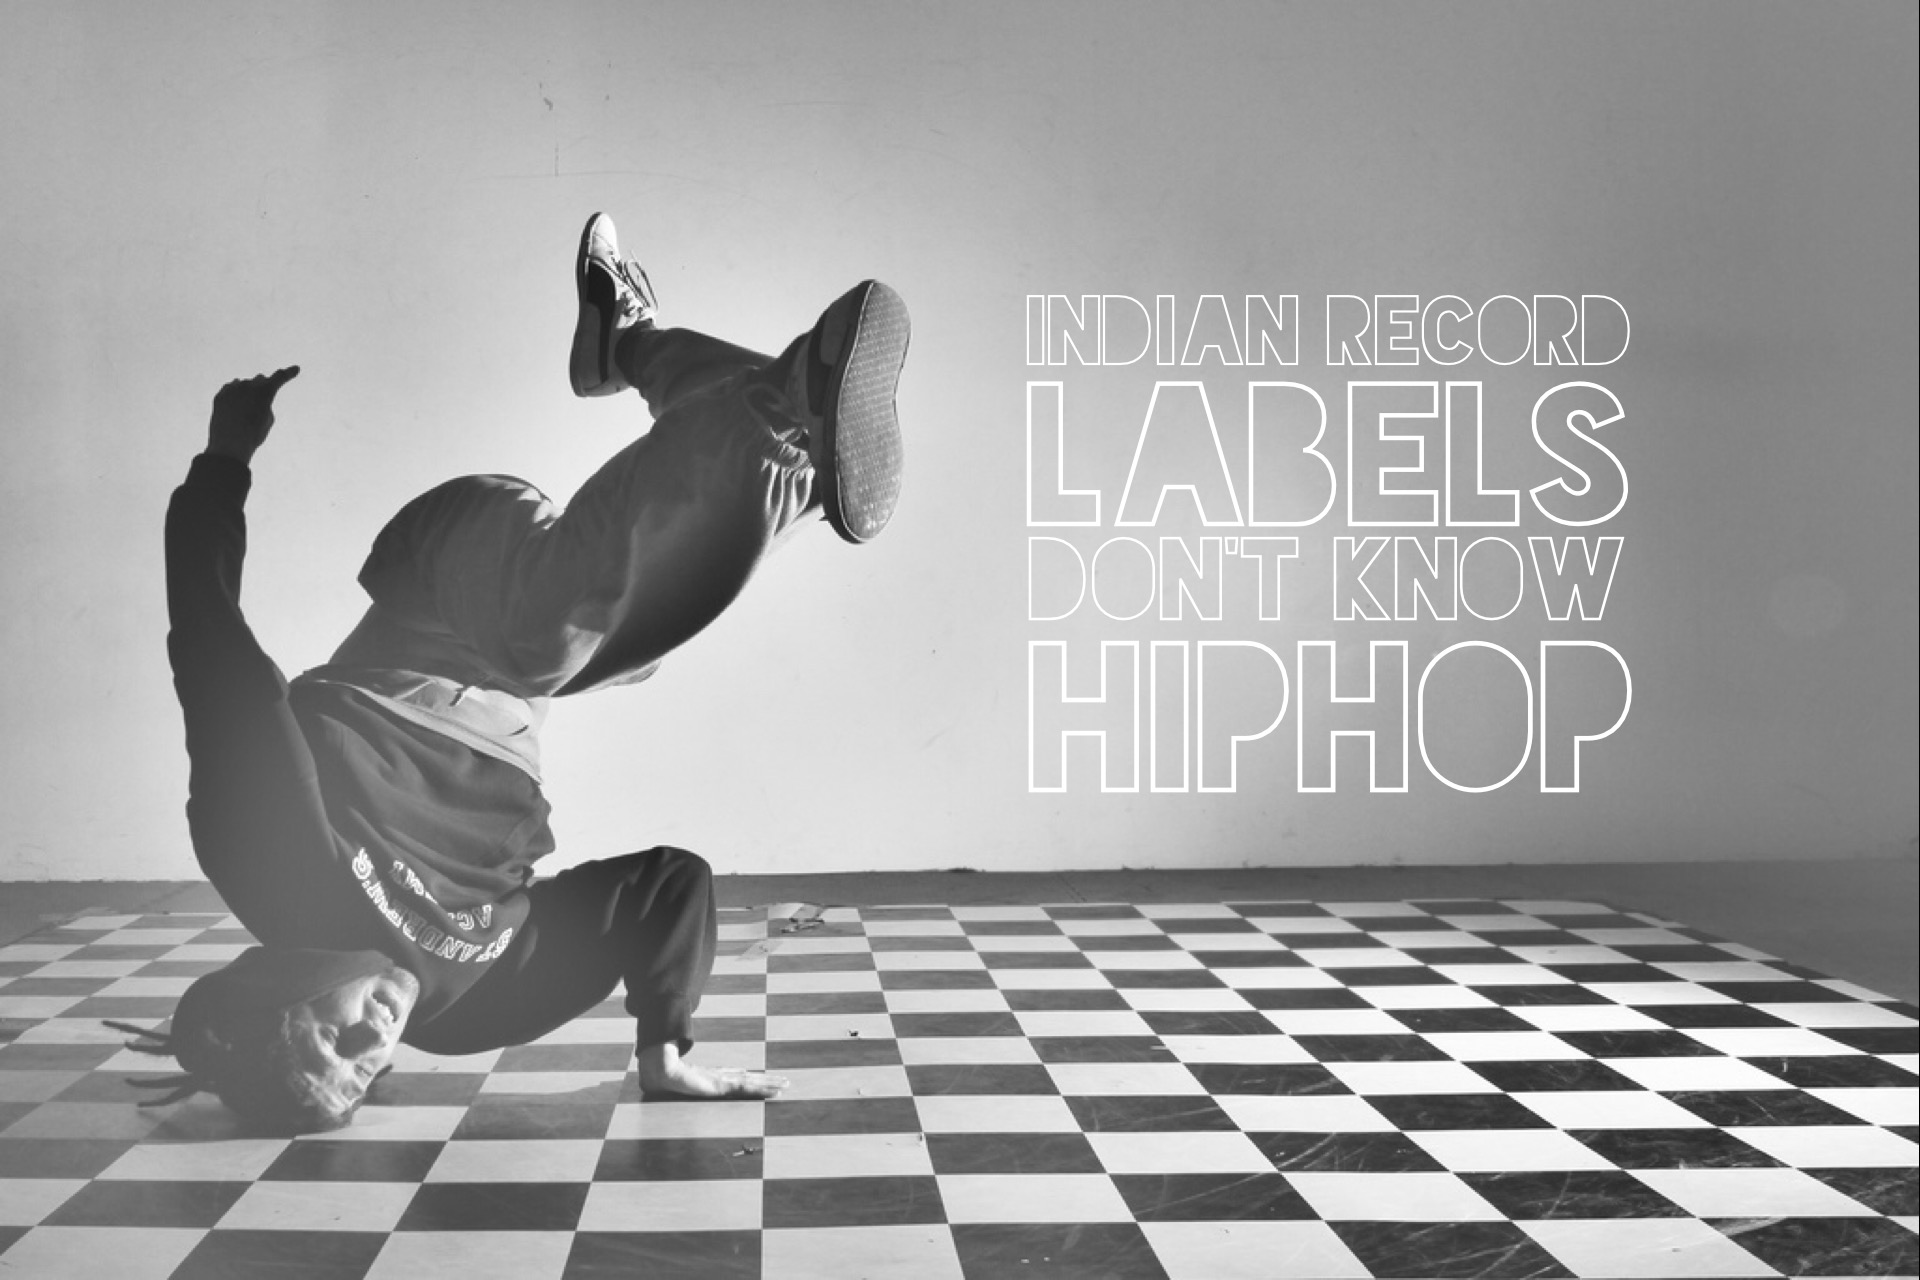 Indian Record Labels Don't Know Hip Hop